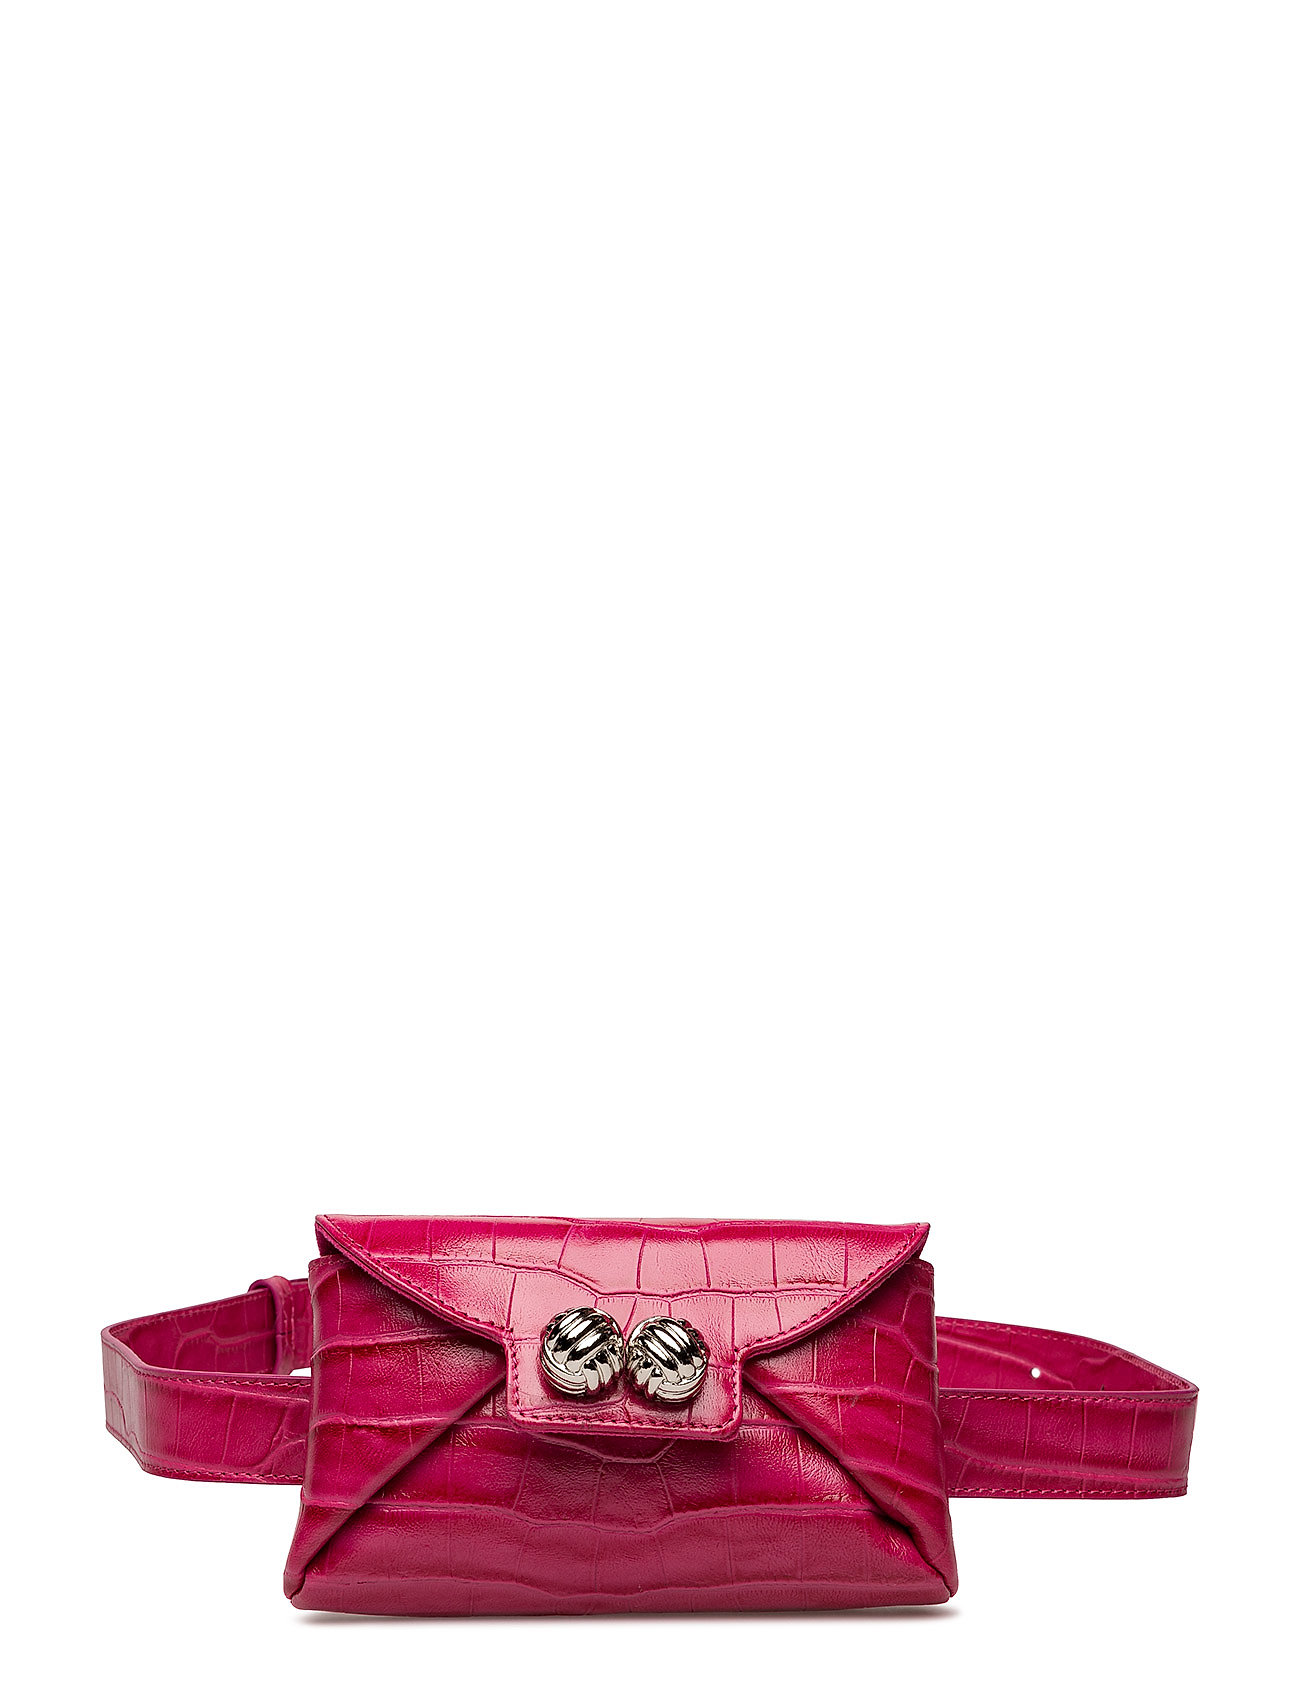 Leowulff Tiny bag - PINK